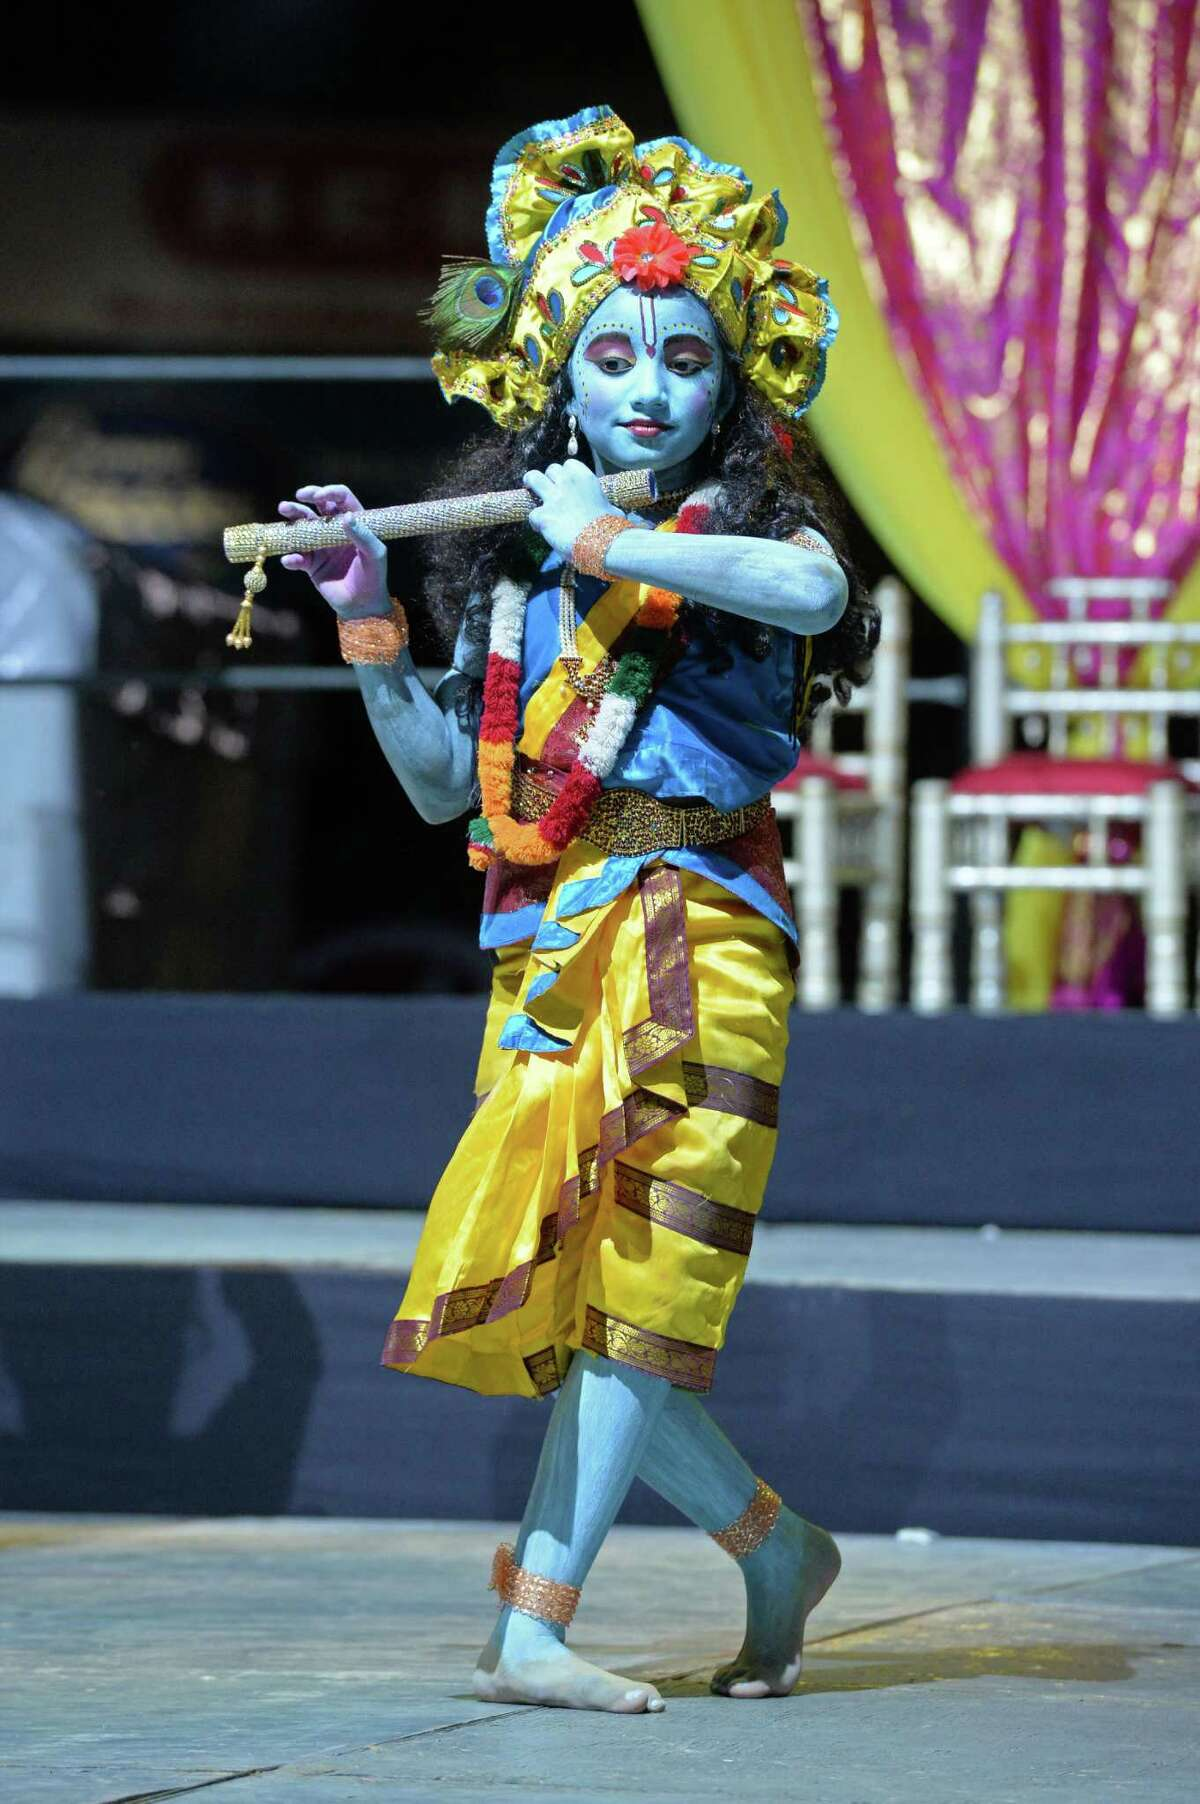 Stage performers at the Diwali Festival in Sugar Land.